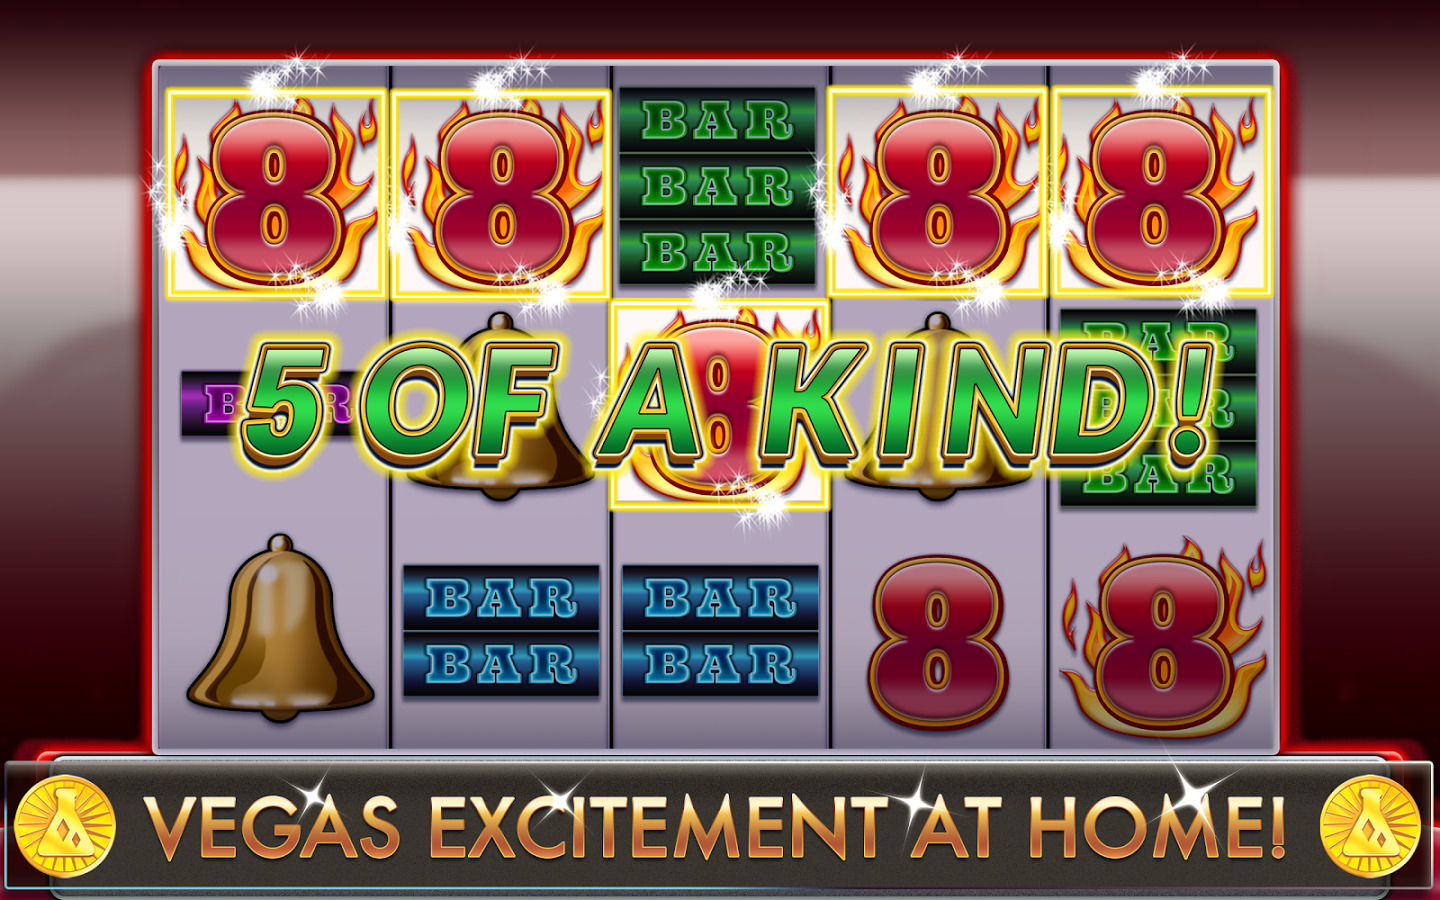 Blazing 888 slots winning 5 of a kind